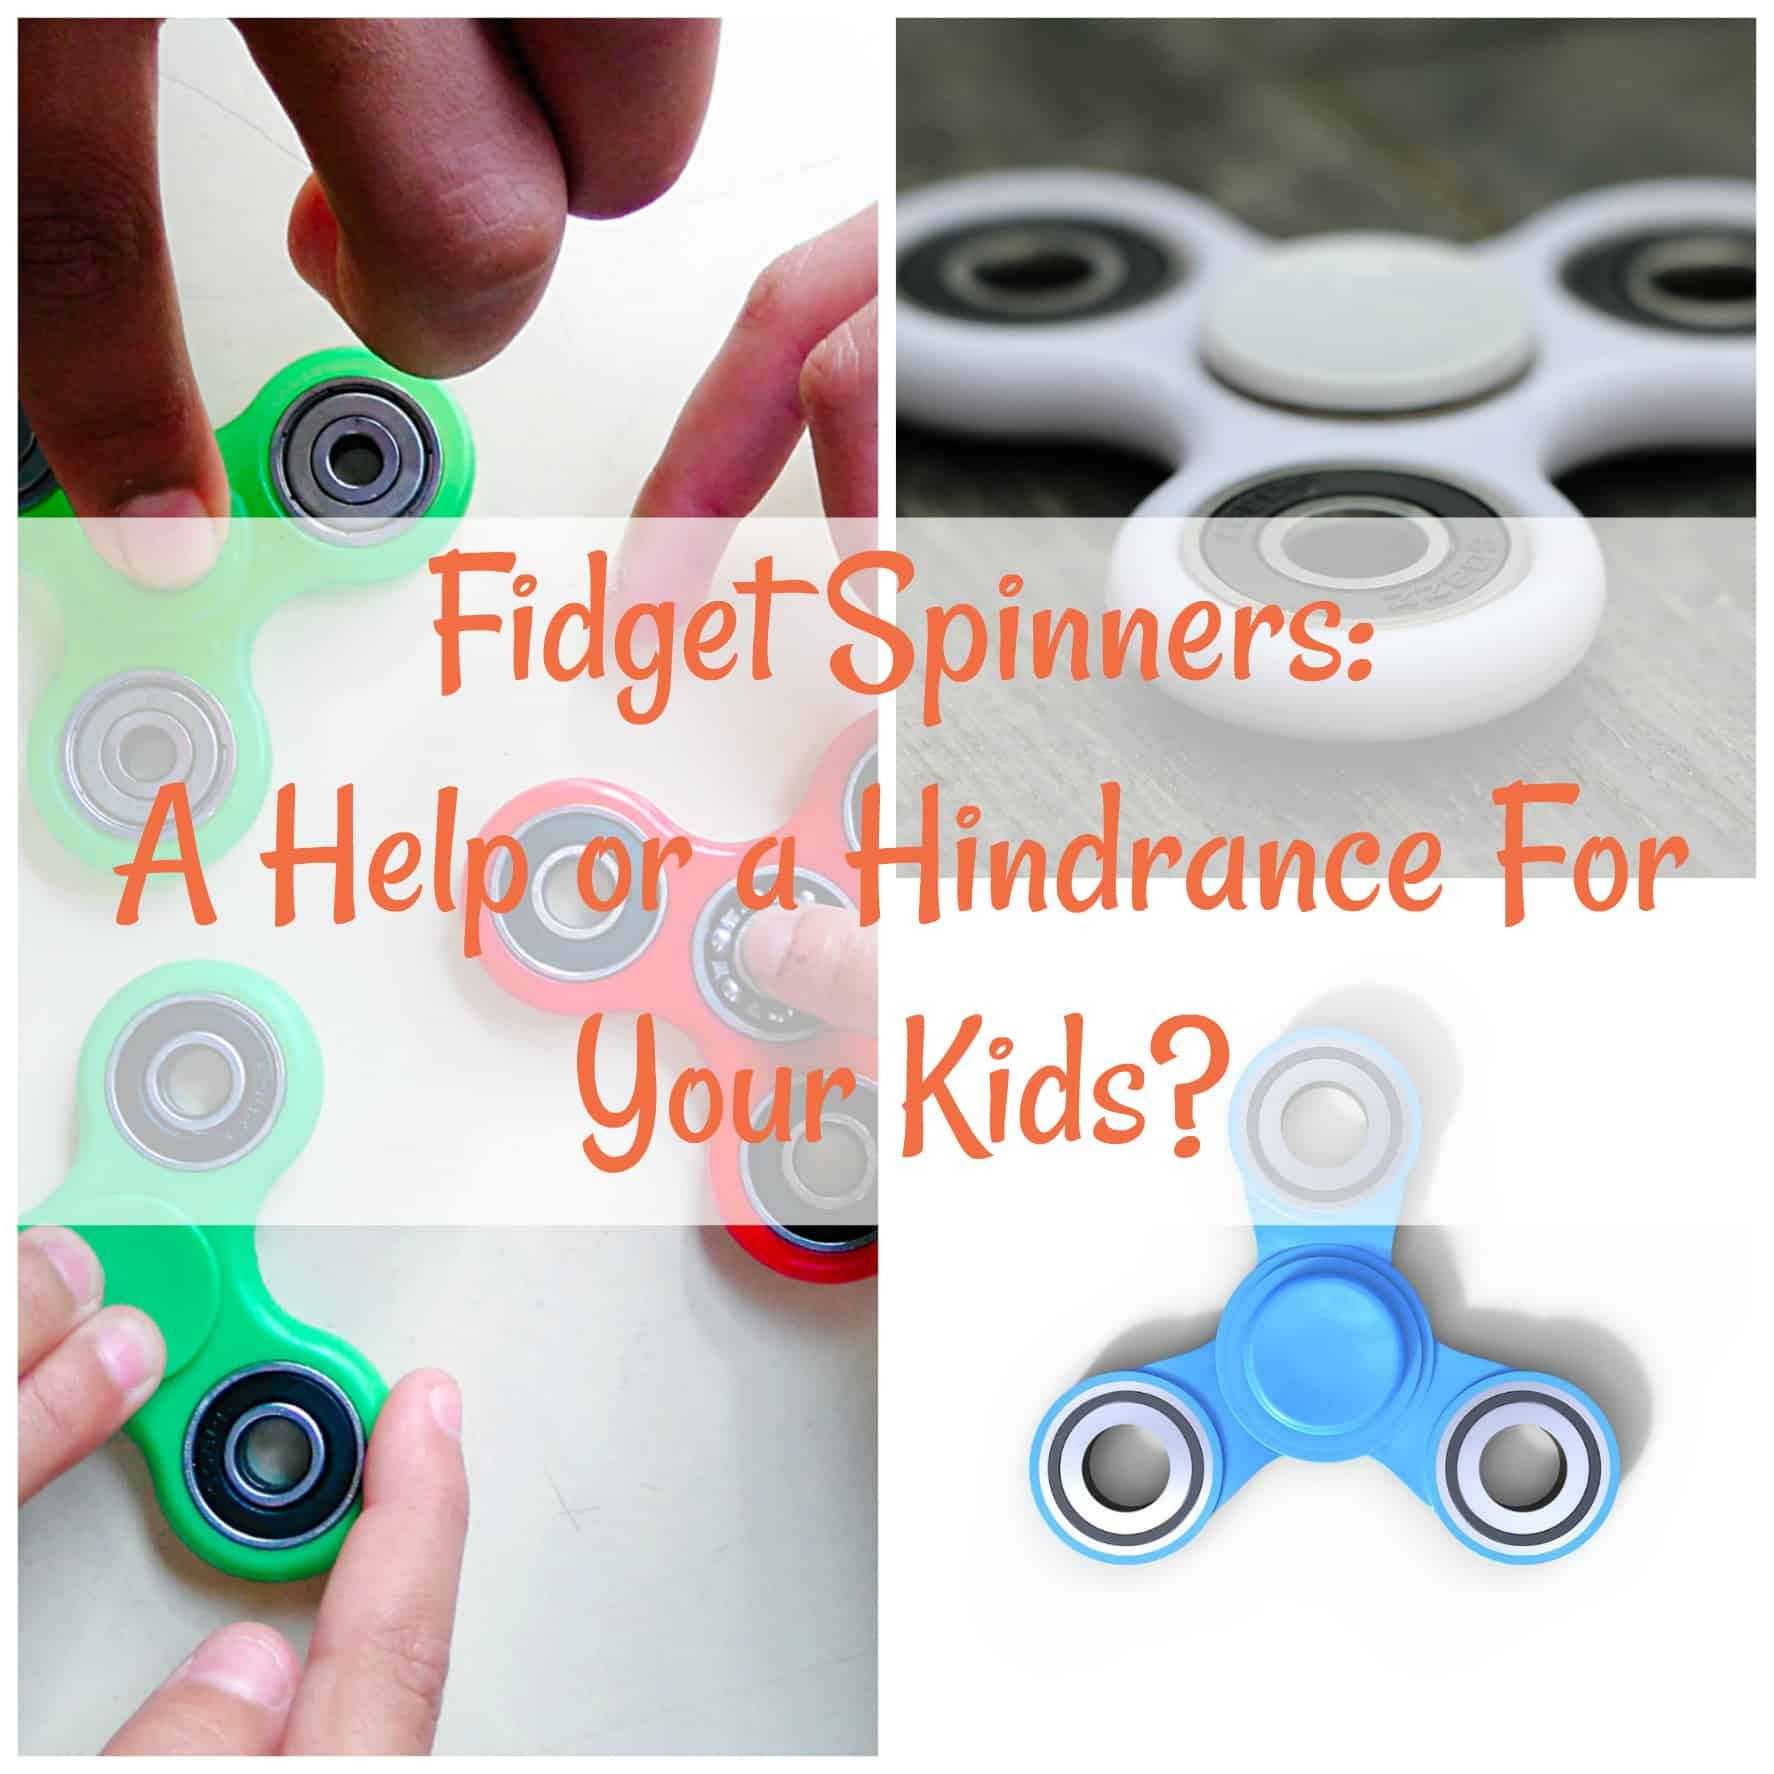 Mindful Eating Adhd And Nutrition >> Fidget Spinners- A Help or a Hindrance for Your Kids? - The Organized Mom